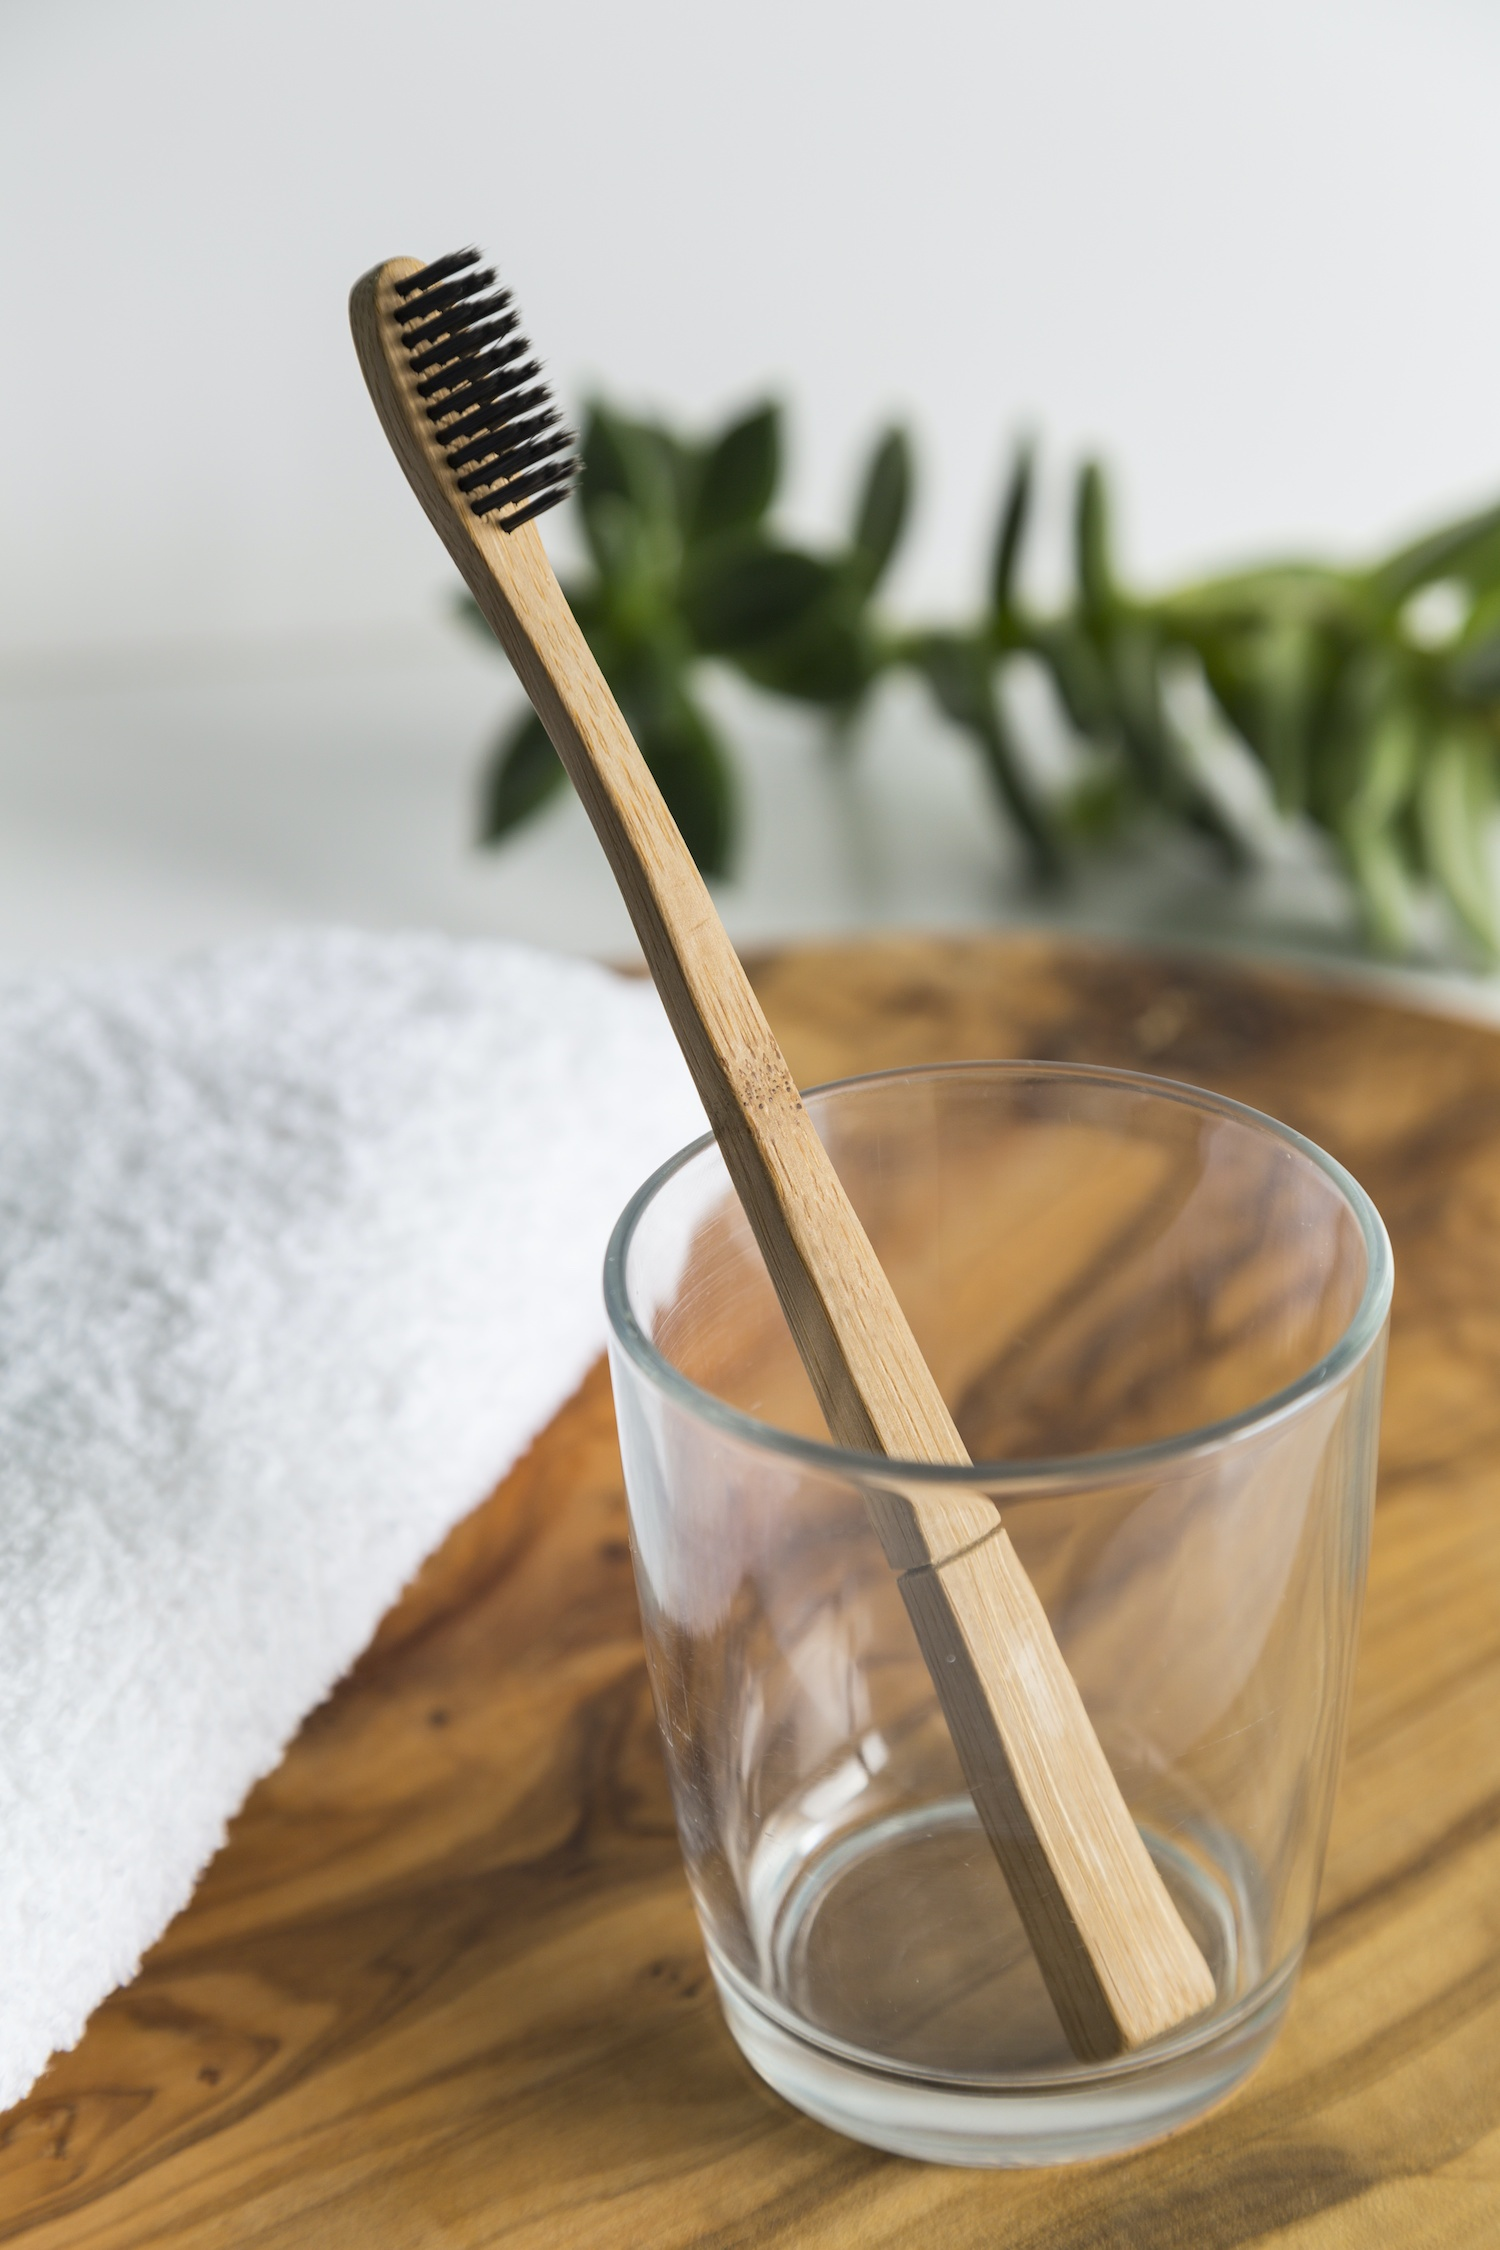 Benefits of switching to a bamboo toothbrush. | Bonnibelle Chukwuneta | Millennial Lifestyle By Design